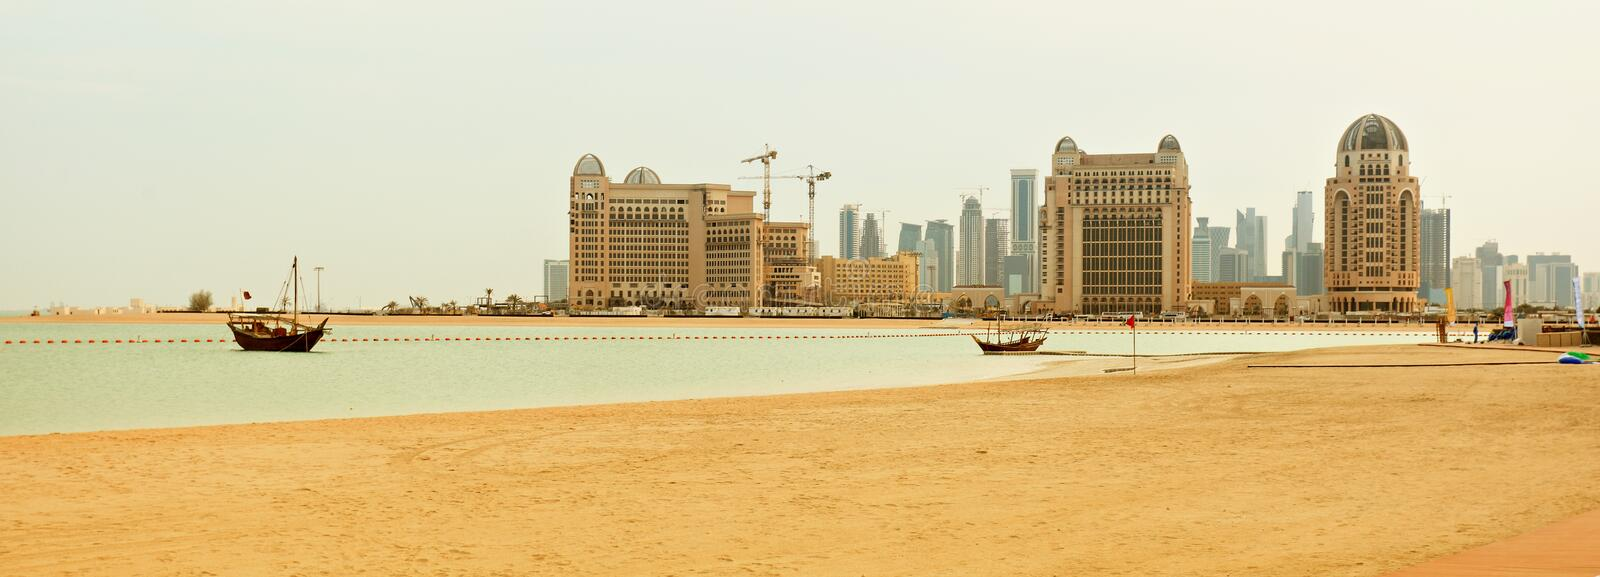 Qatar beach panorama royalty free stock photography